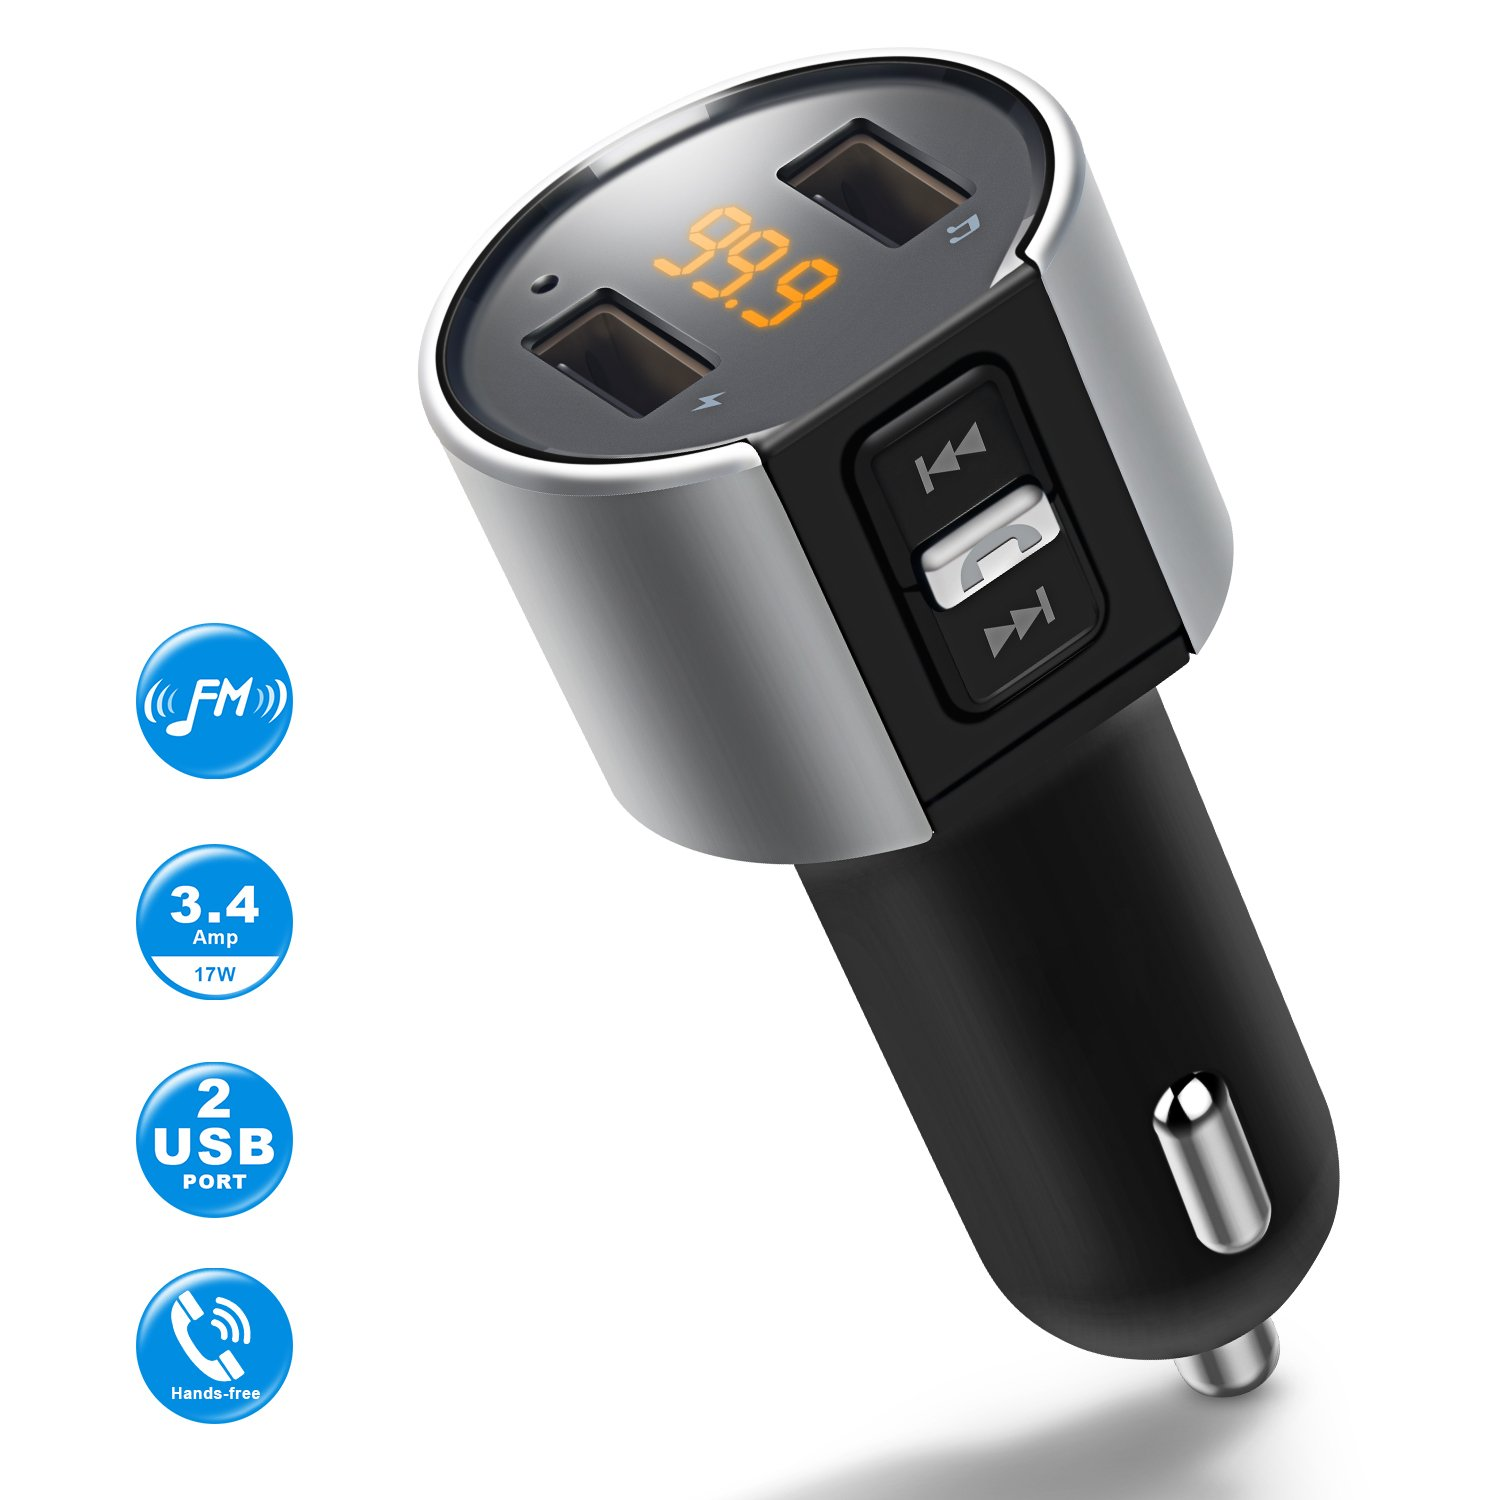 Bluetooth FM Transmitter for Car, Wireless Bluetooth FM Radio Adapter Car Kit with Hands-Free Calling and 2 Ports USB Charger 5V/2.4A&1A. by IMDEN